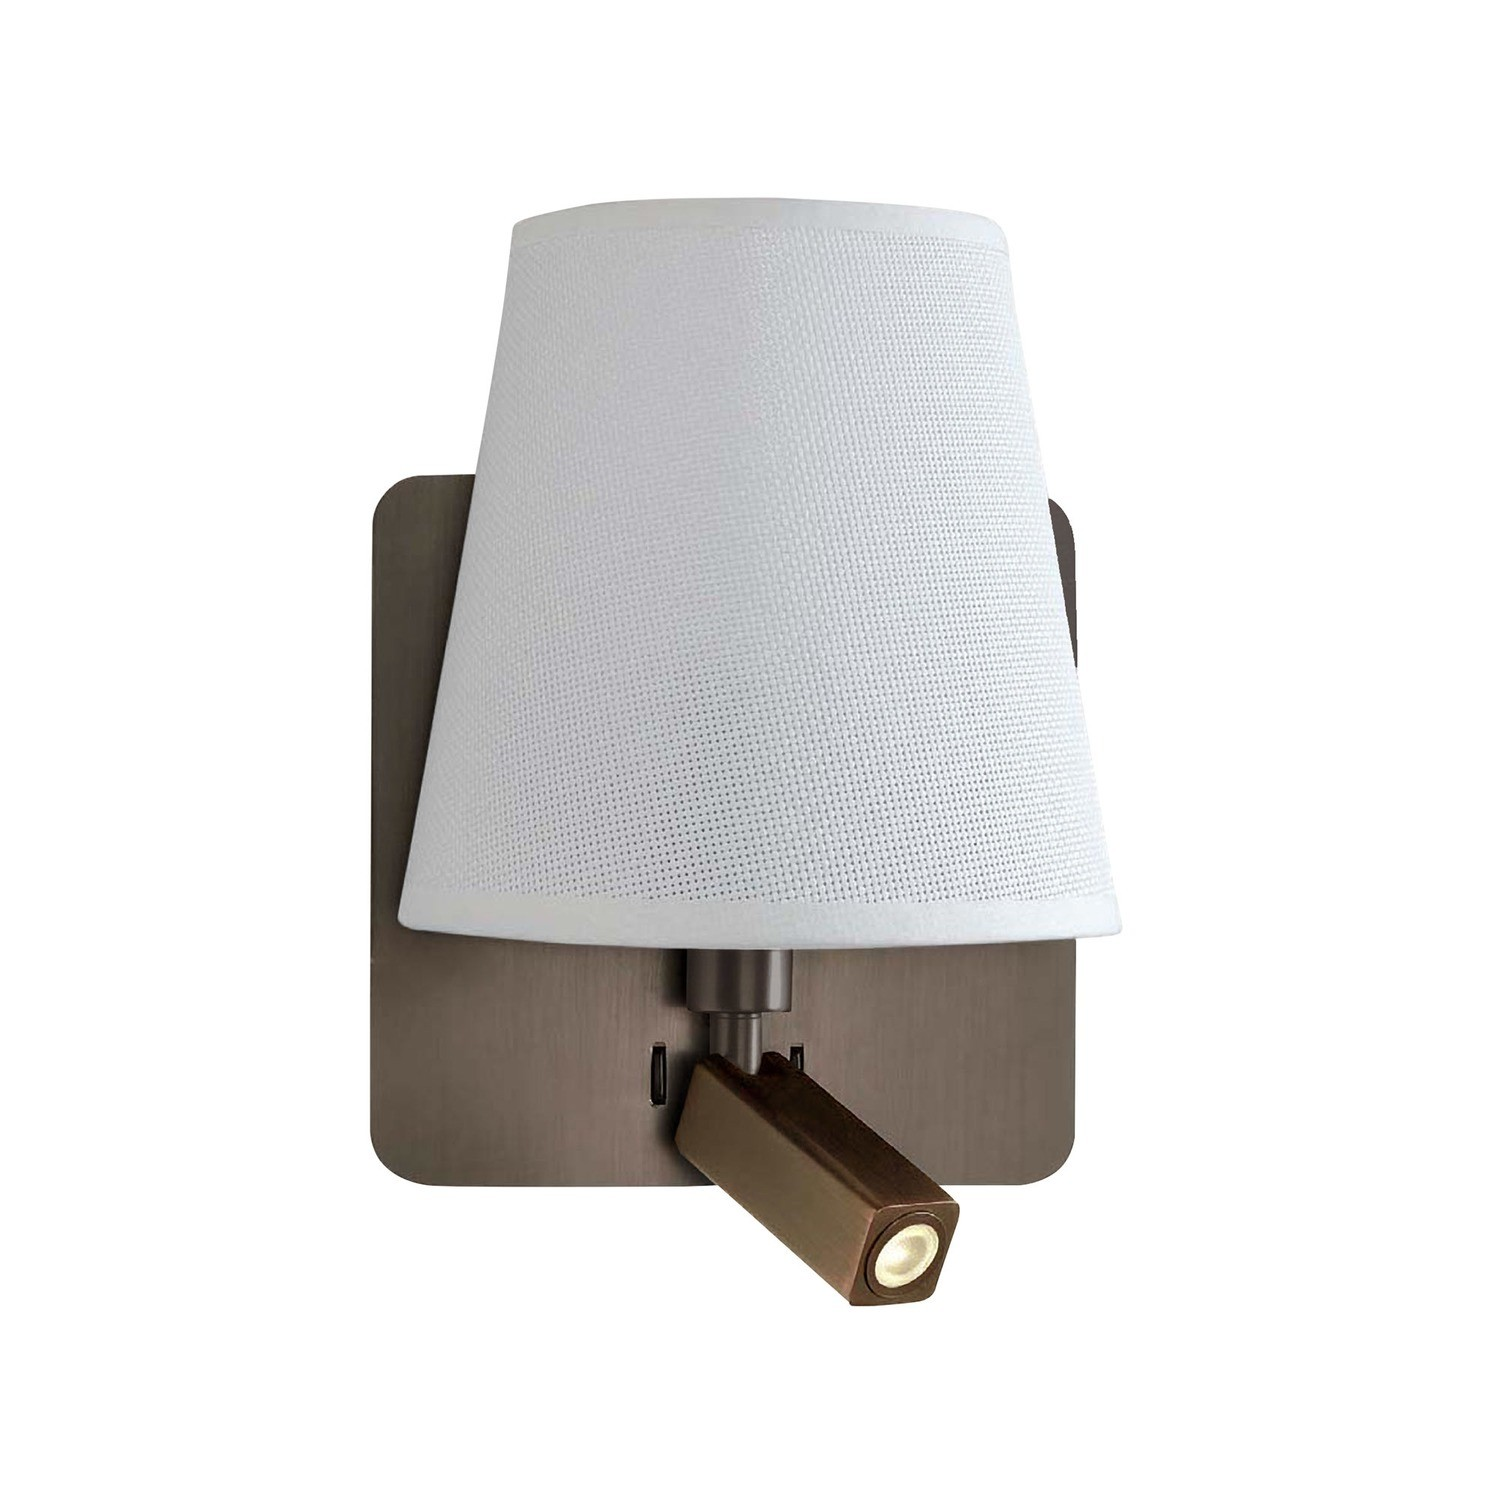 Bahia Wall Lamp With Large Back Plate 1 Light E27 + Reading Light 3W LED With White Shade Bronze 4000K, 200lm,, 3yrs Warranty